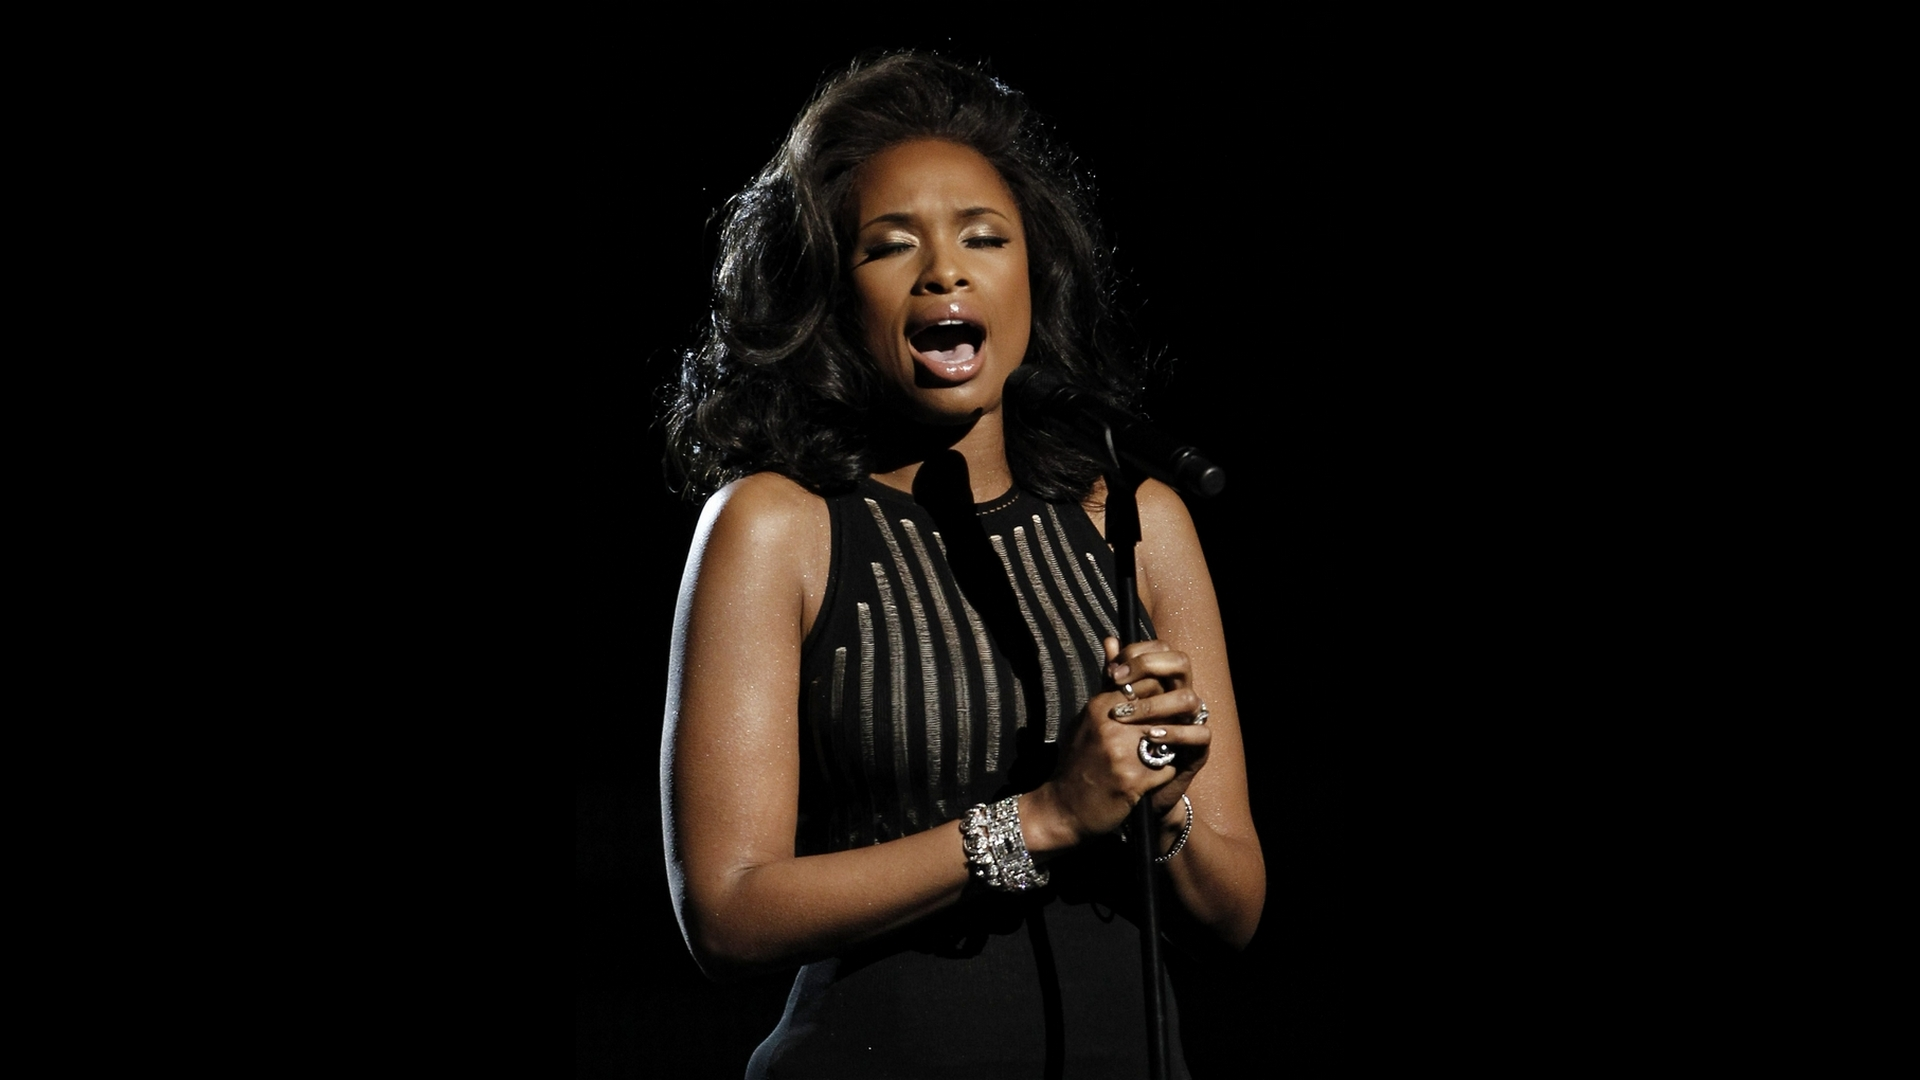 jennifer hudson singing wallpaper 162